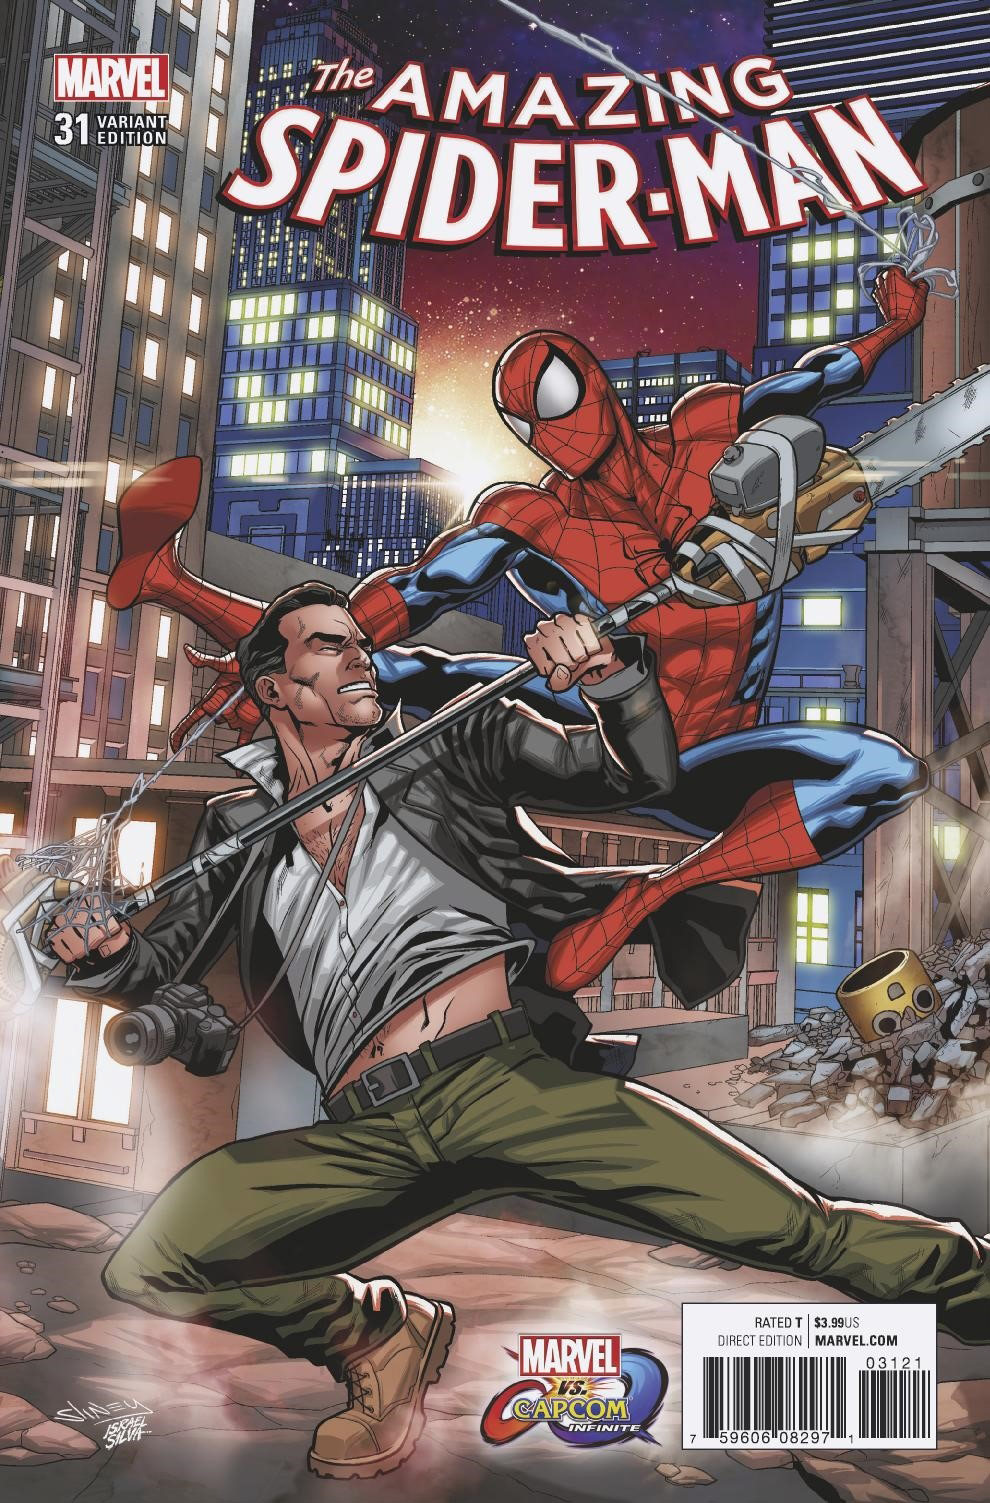 More Marvel vs. Capcom: Infinite variant covers 5 out of 5 image gallery